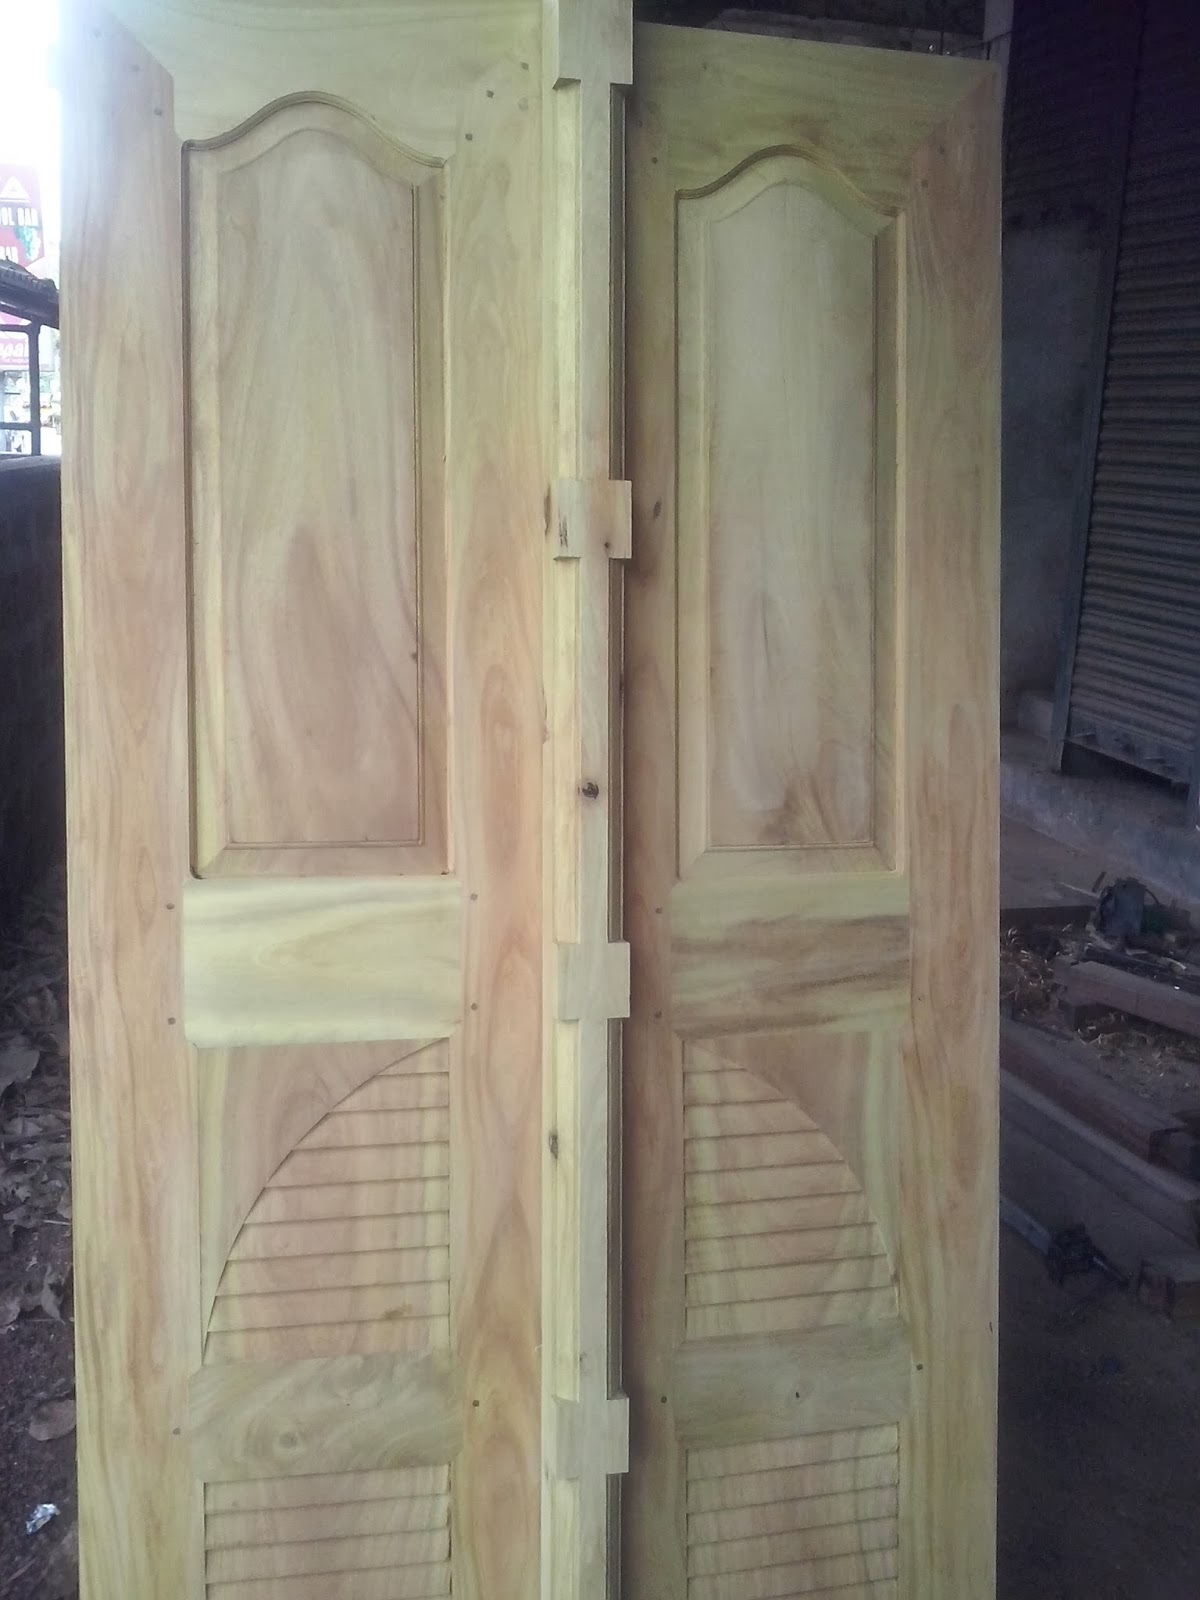 Kerala Style Carpenter Works And Designs September 2013: Carpenter Doors Designs & Kerala Style Carpenter Works And